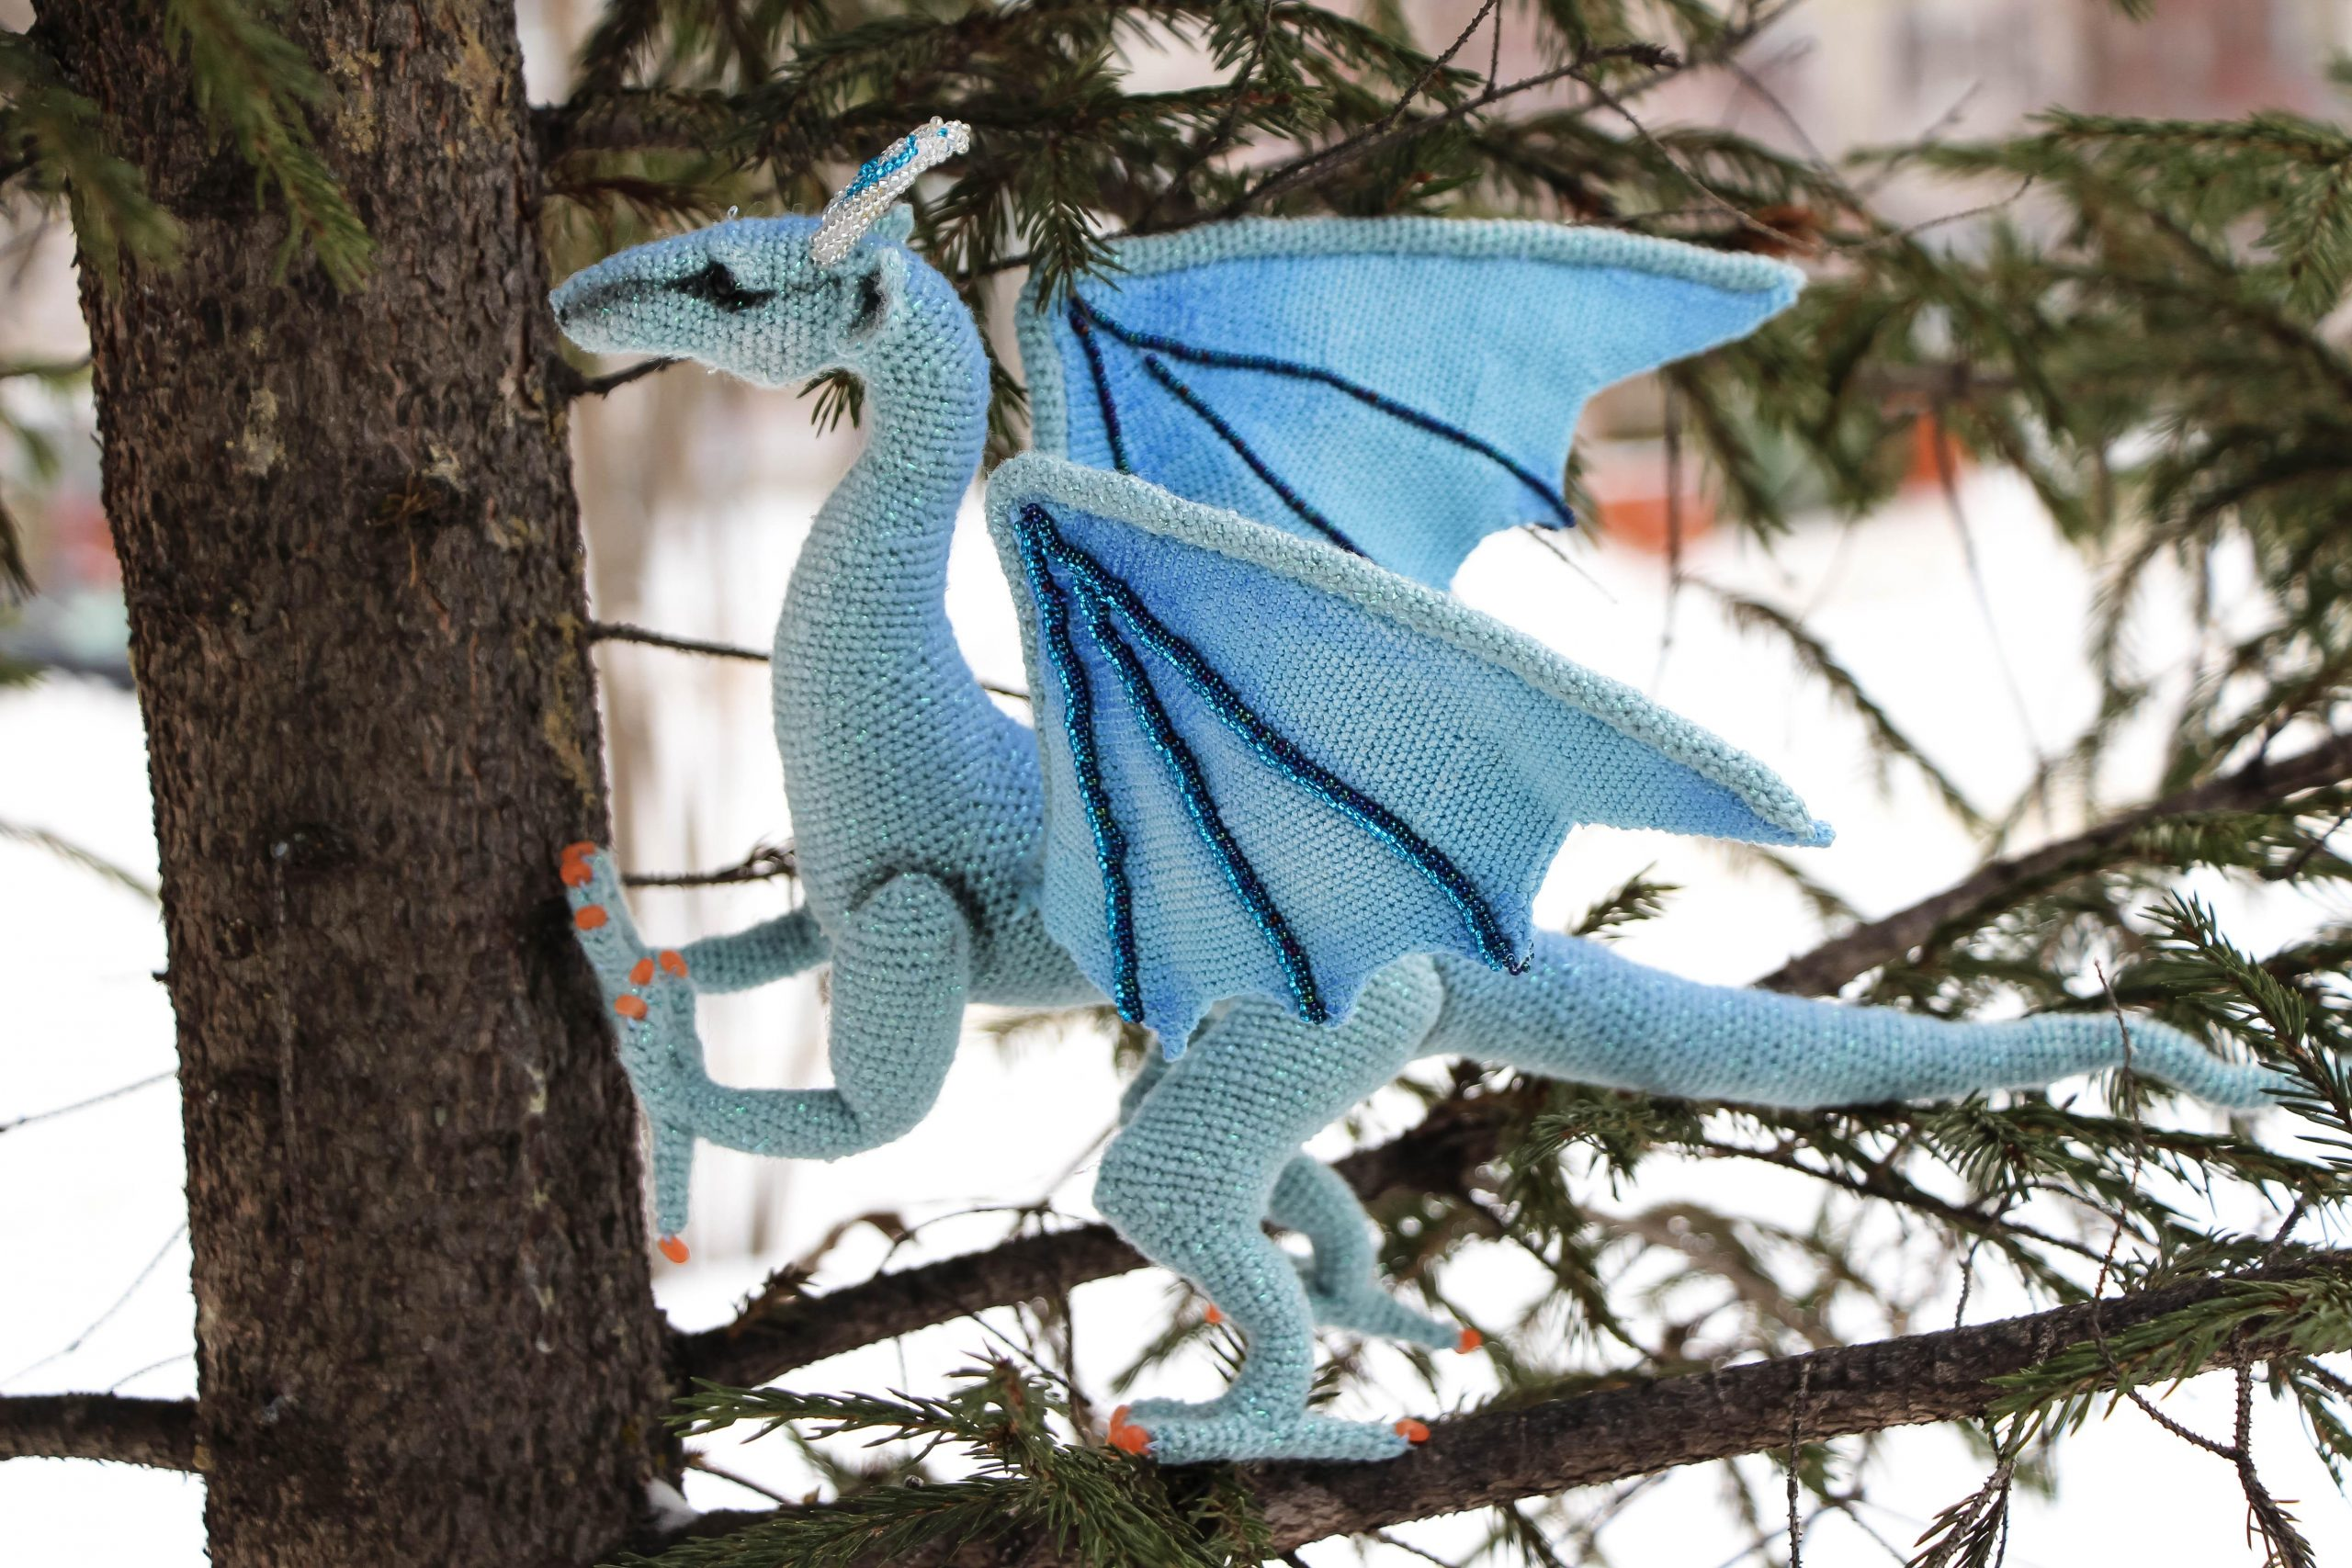 nezgheshg1o41 scaled - I crocheted this dragon for about a month! I like him very much. - hobbies, crafts